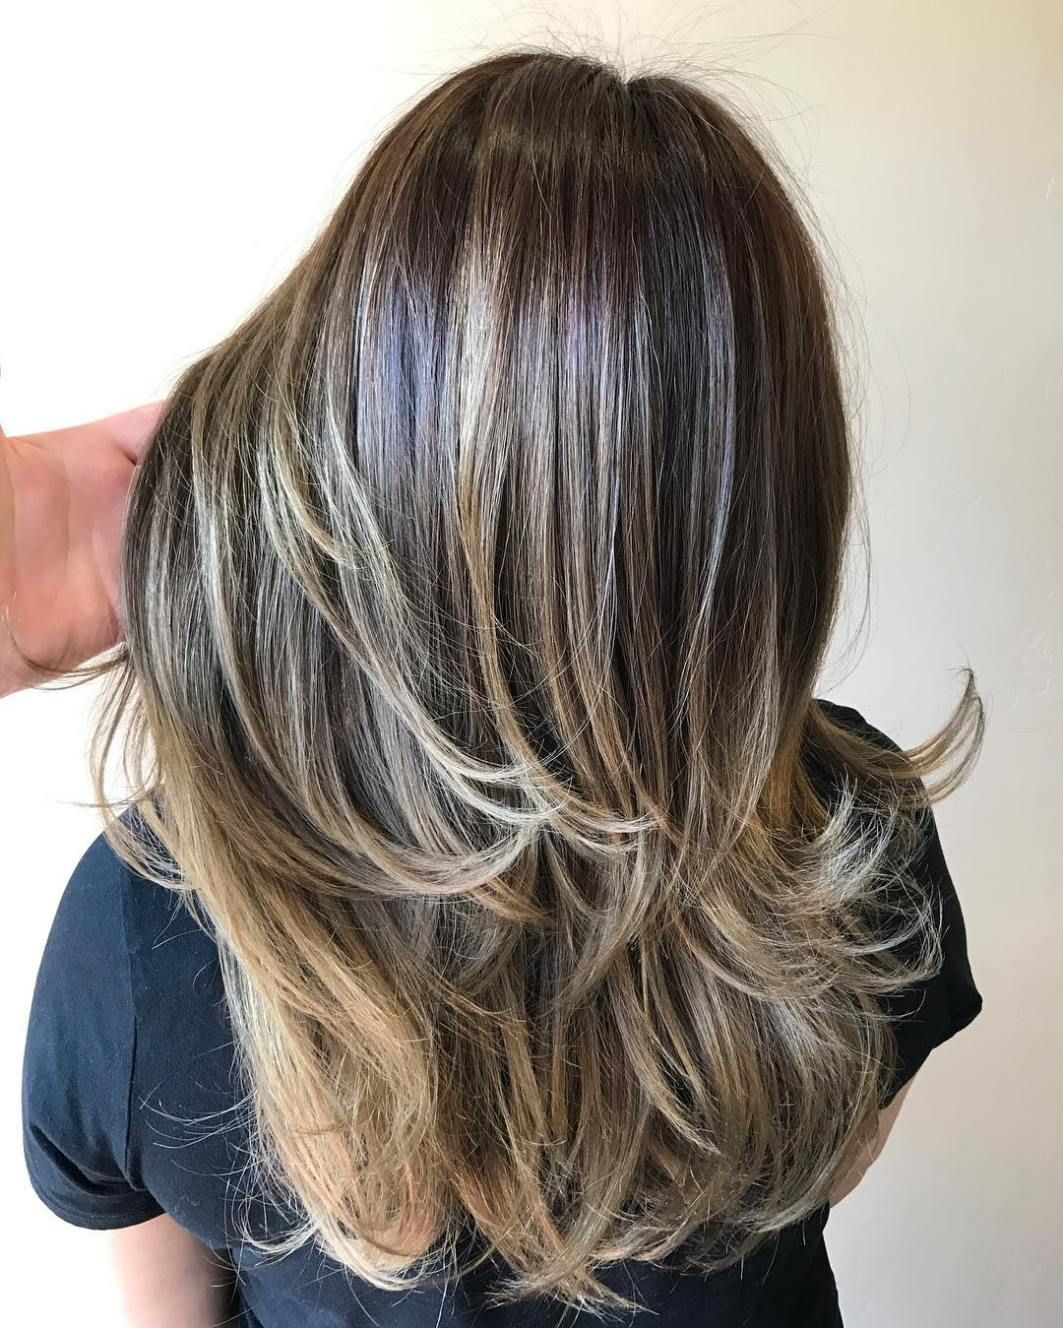 50 New Long Hairstyles With Layers For 2020 Hair Adviser In 2020 Long Layered Hair Haircuts For Long Hair Long Hair Styles